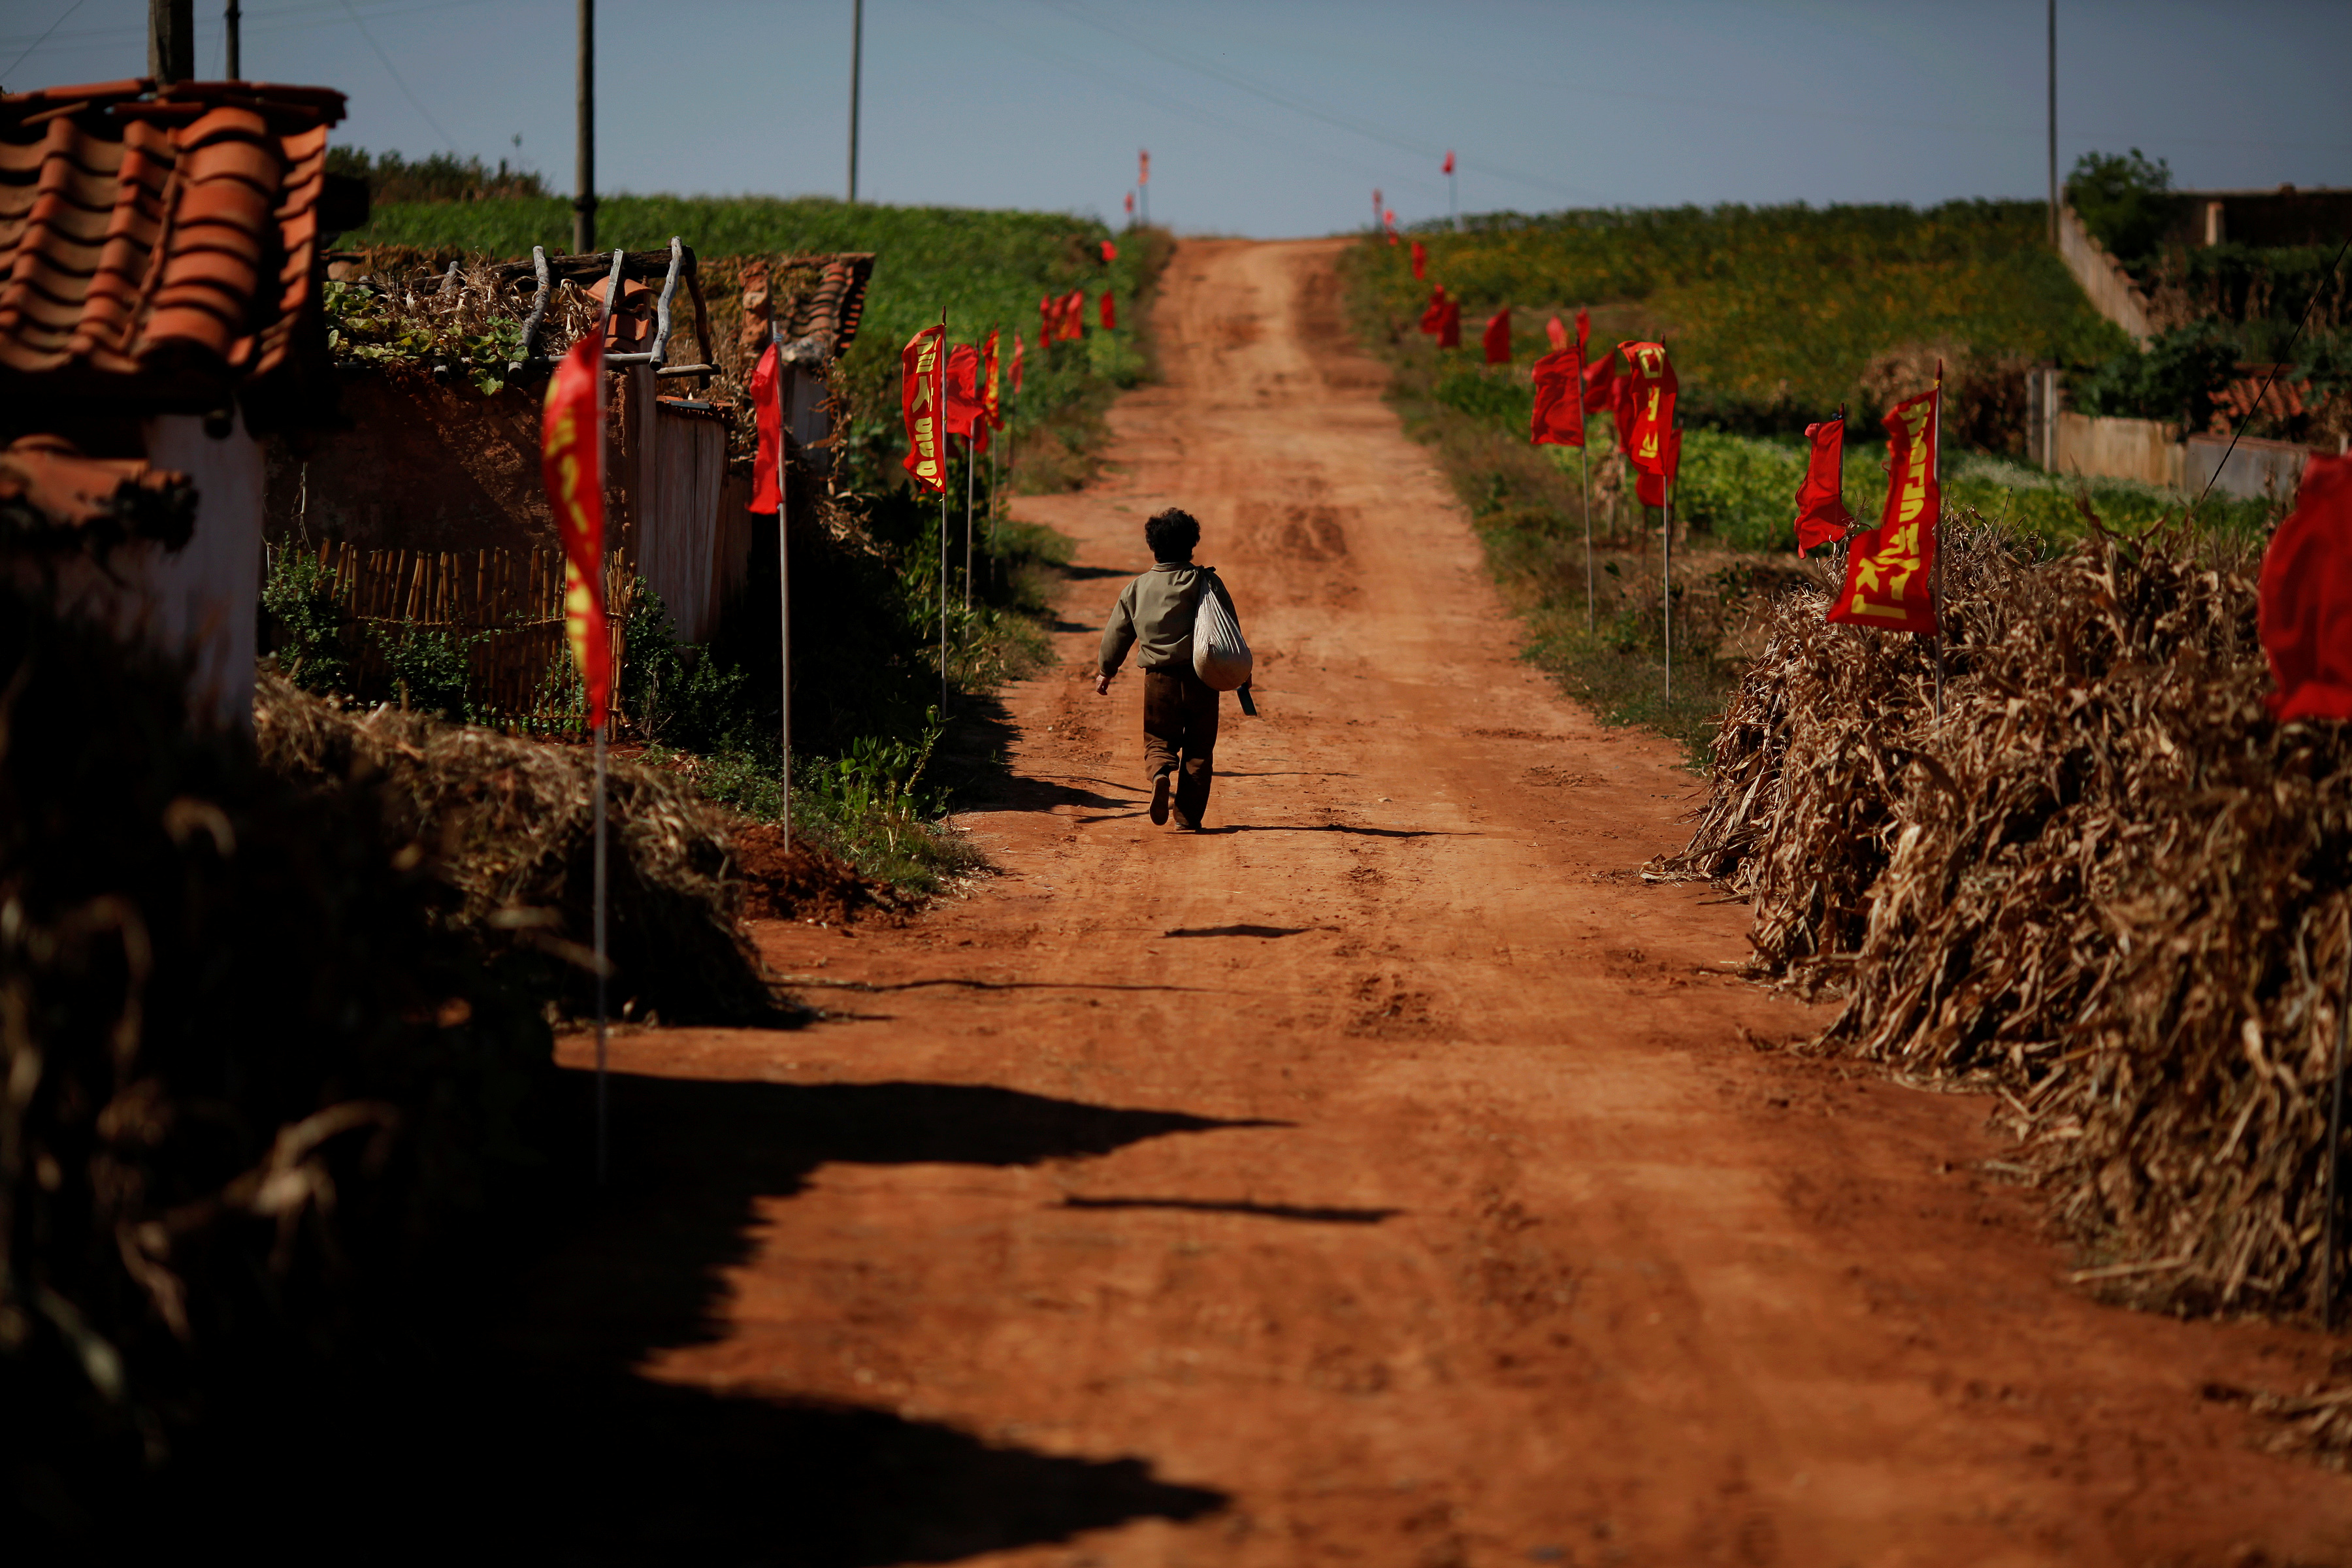 FILE PHOTO: A North Korean farmer walks through a village in an area damaged by summer floods and typhoons in South Hwanghae province September 30, 2011. REUTERS/Damir Sagolj/File Photo